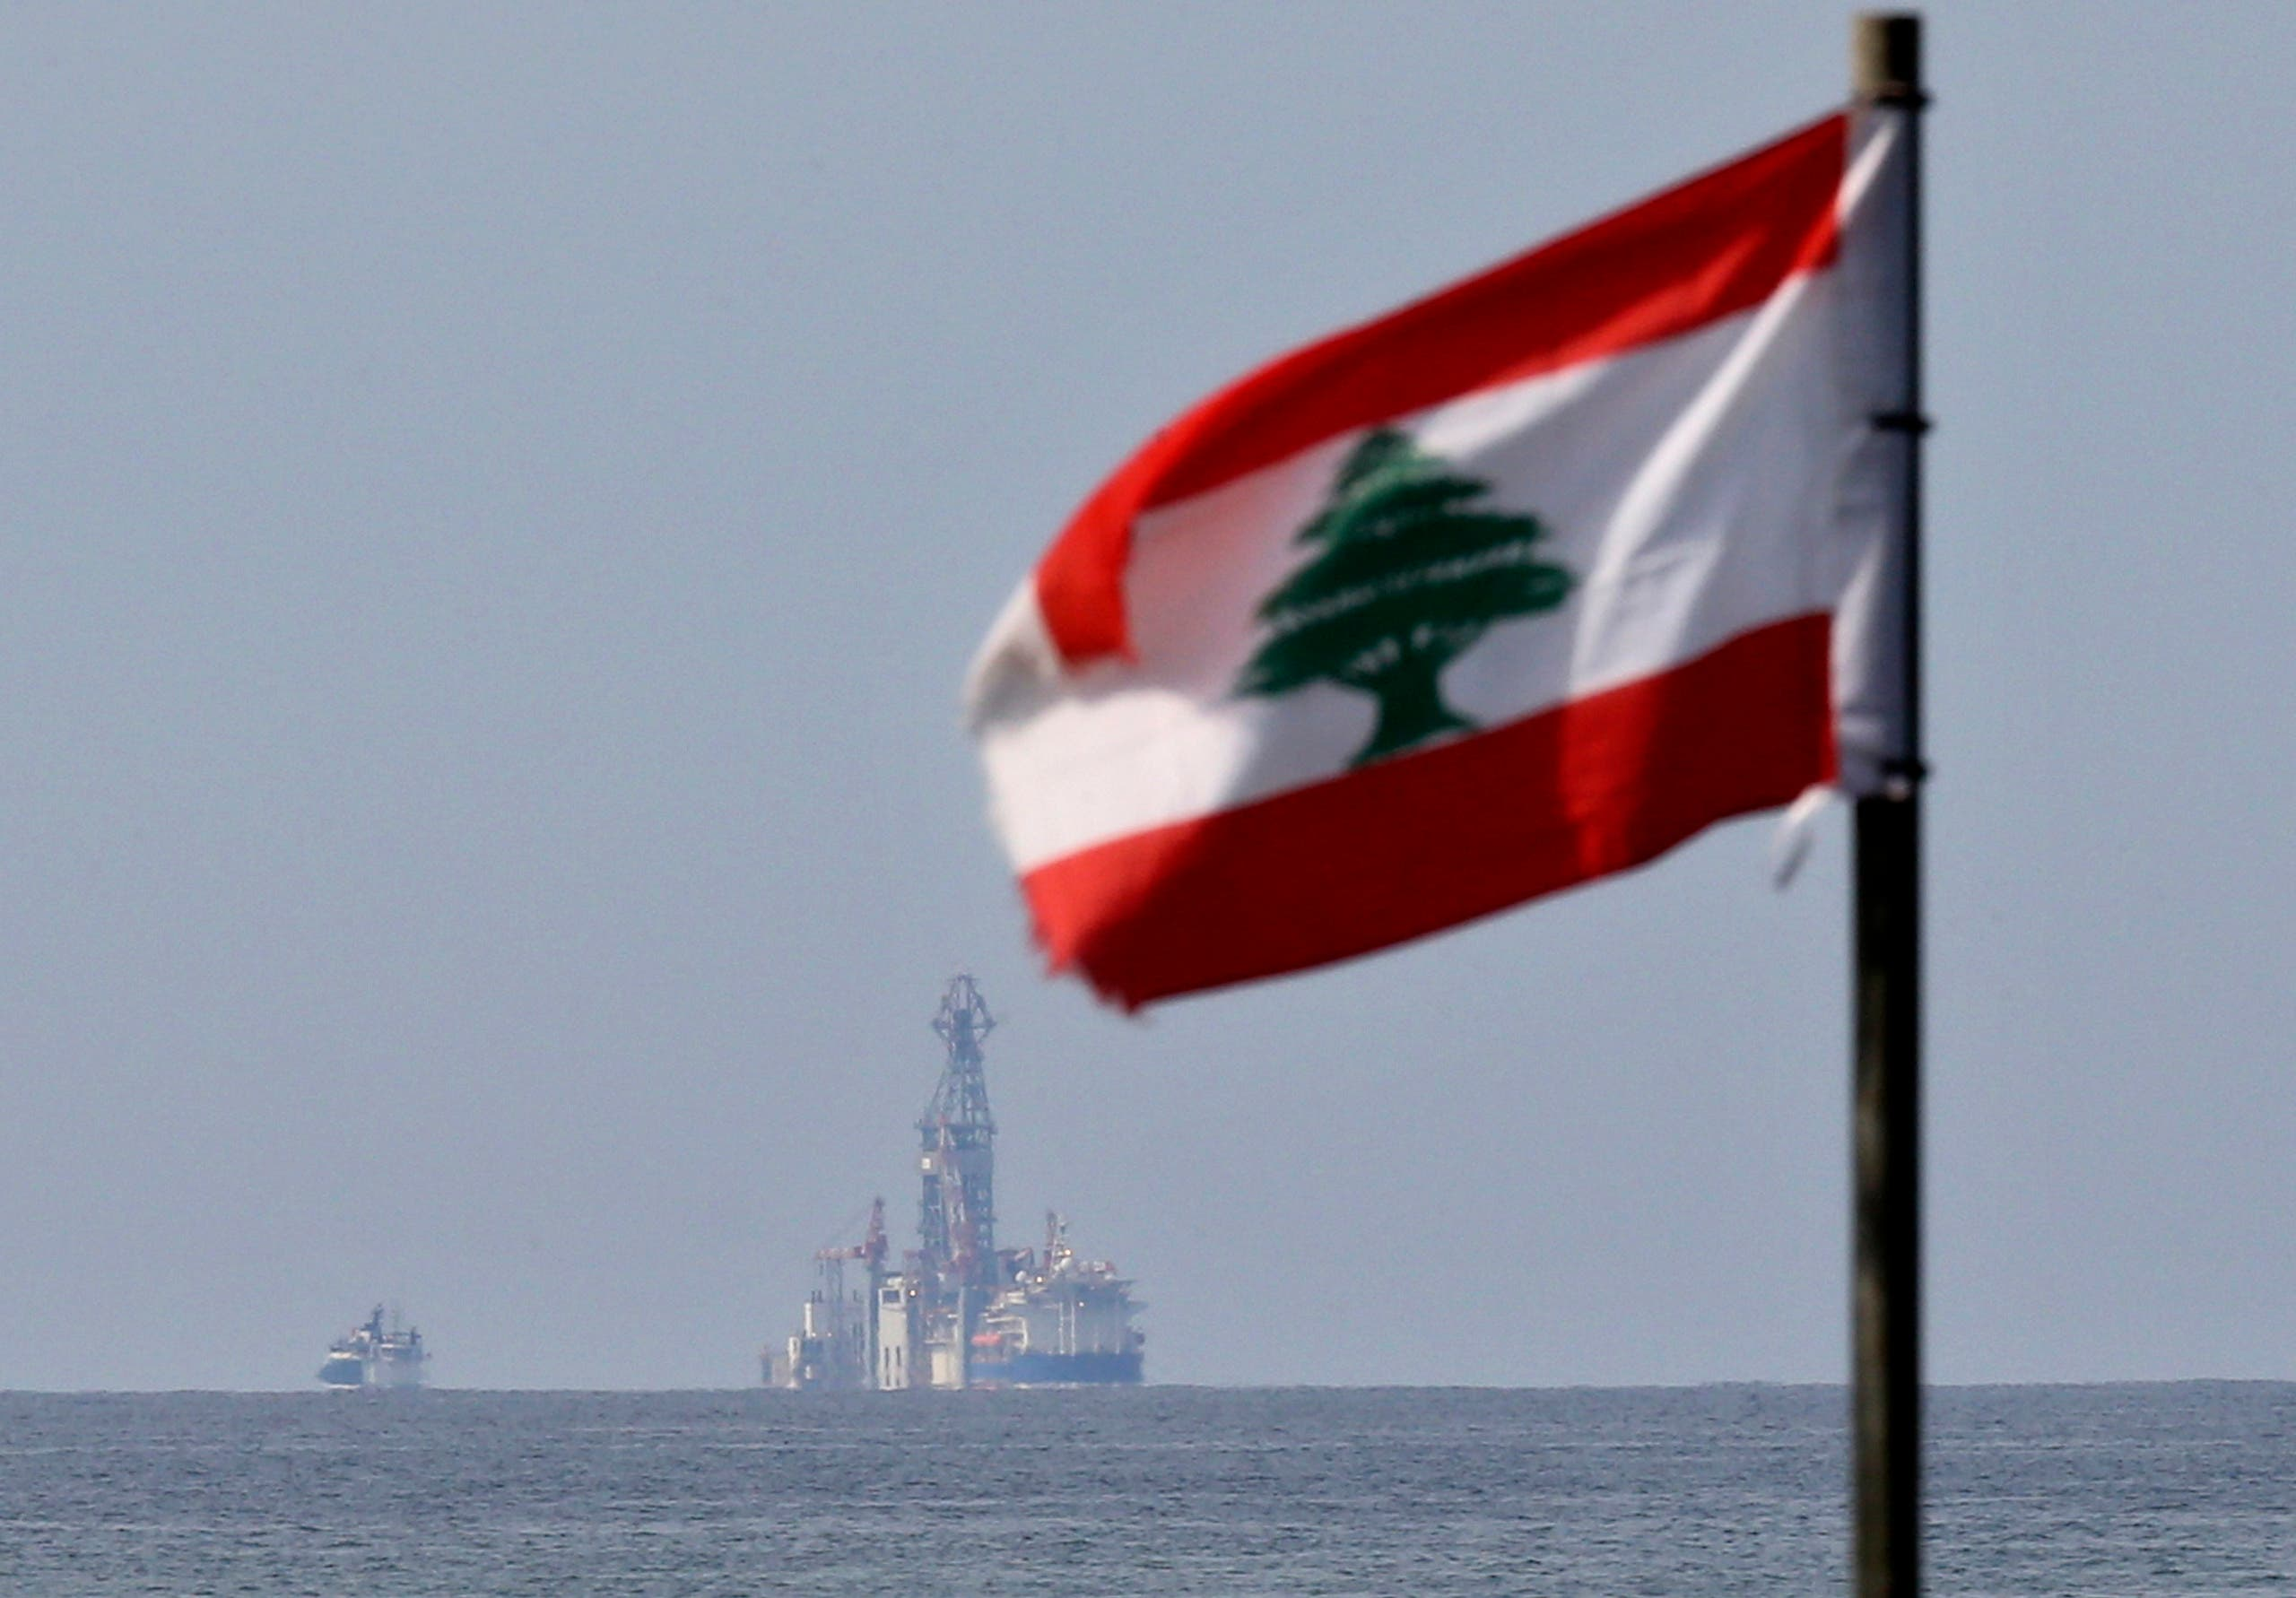 A Lebanese flag flutters in the wind as the drilling ship Tungsten Explorer is seen off the coast of Beirut. (File photo: AP)